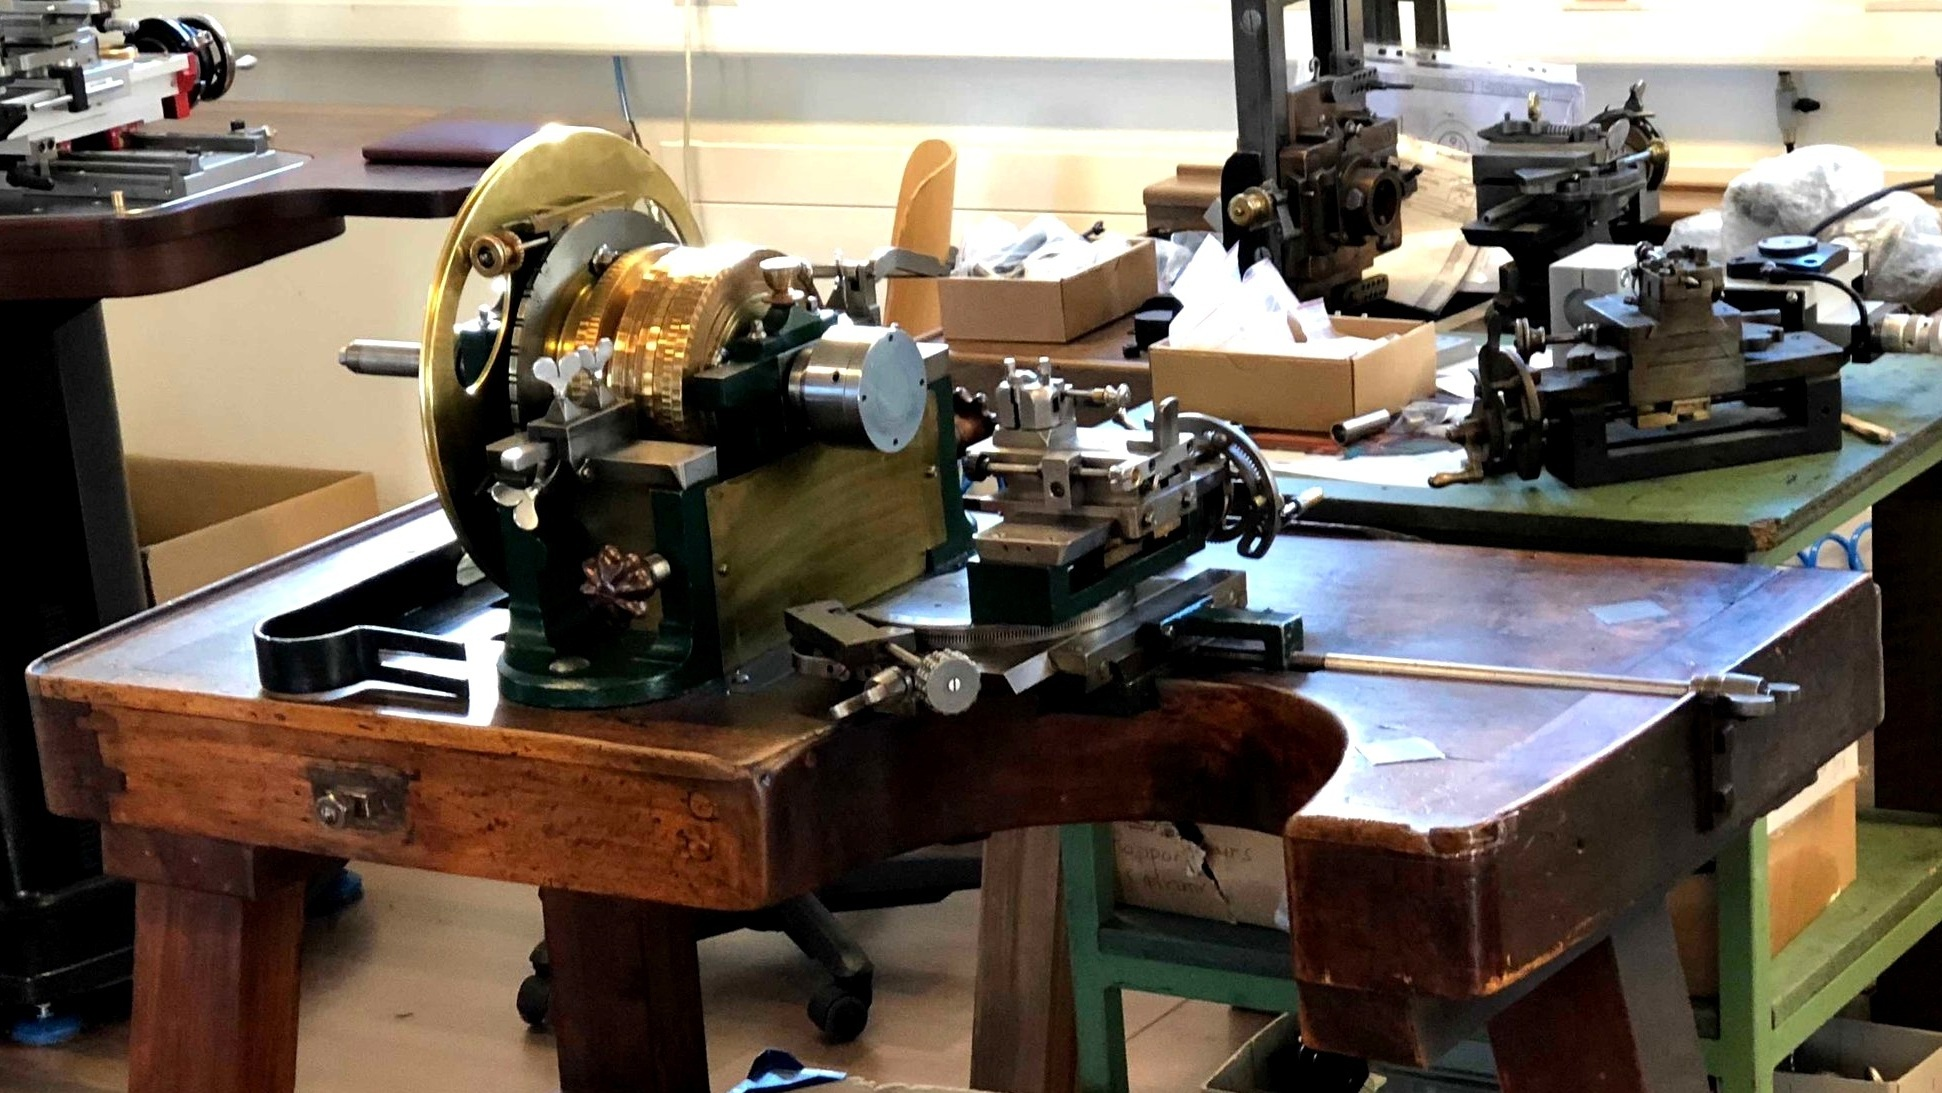 Making Guilloché Part 1 - by Brittany Nicole CoxAntiquarian Horologist